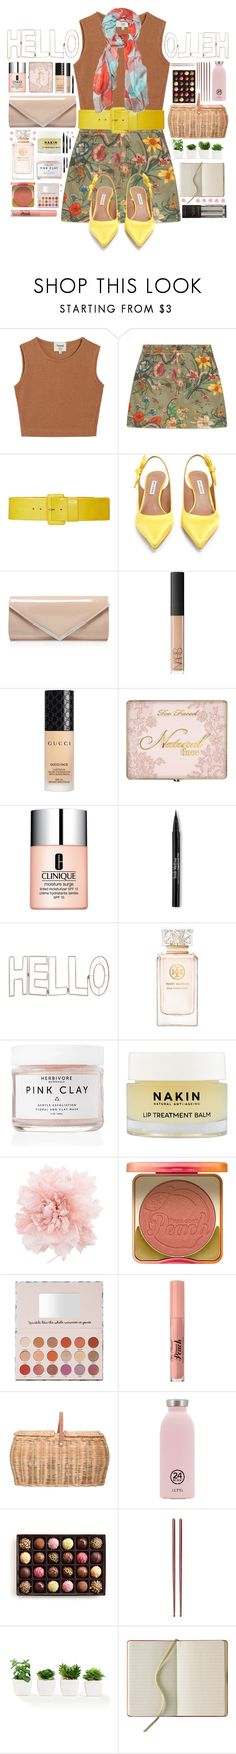 """""""HELLO🌼"""" by helloafinda ❤ liked on Polyvore featuring Samuji, Gucci, Tabitha Simmons, Carvela Kurt Geiger, NARS Cosmetics, Clinique, Trish McEvoy, CAbi, Graham & Brown and Tory Burch"""